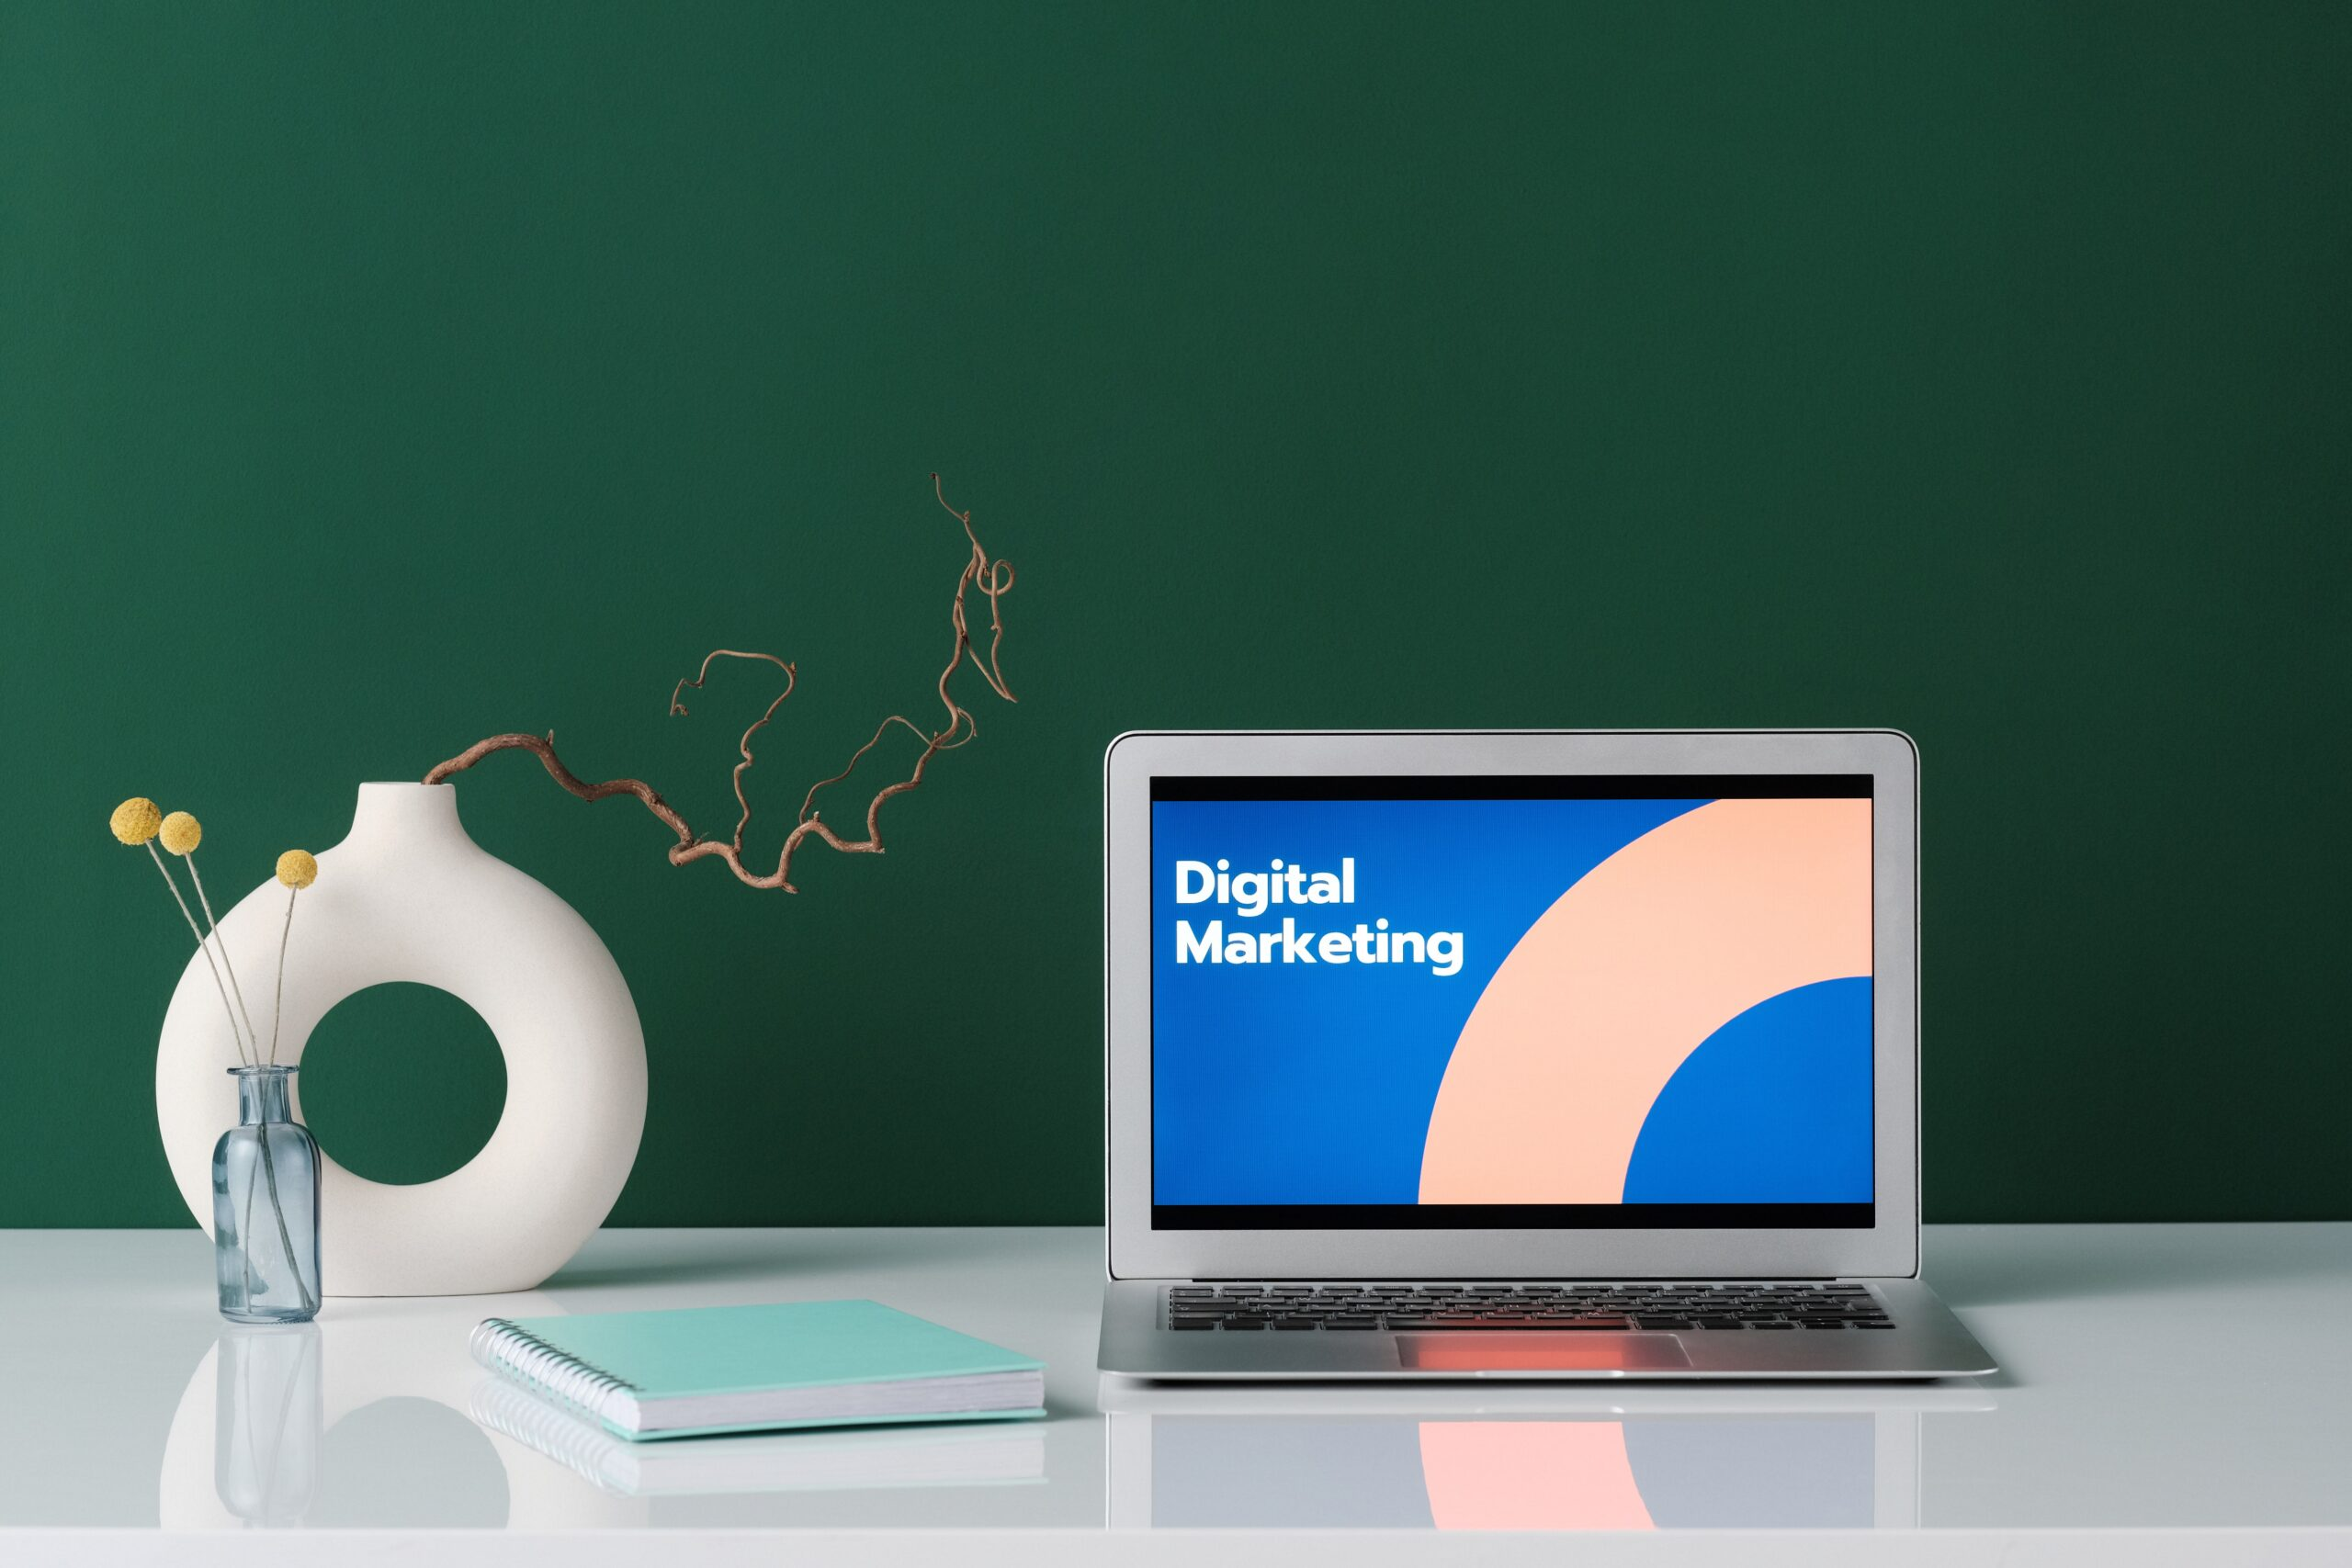 In case You Are Thinking To Hire Digital Marketing Agency